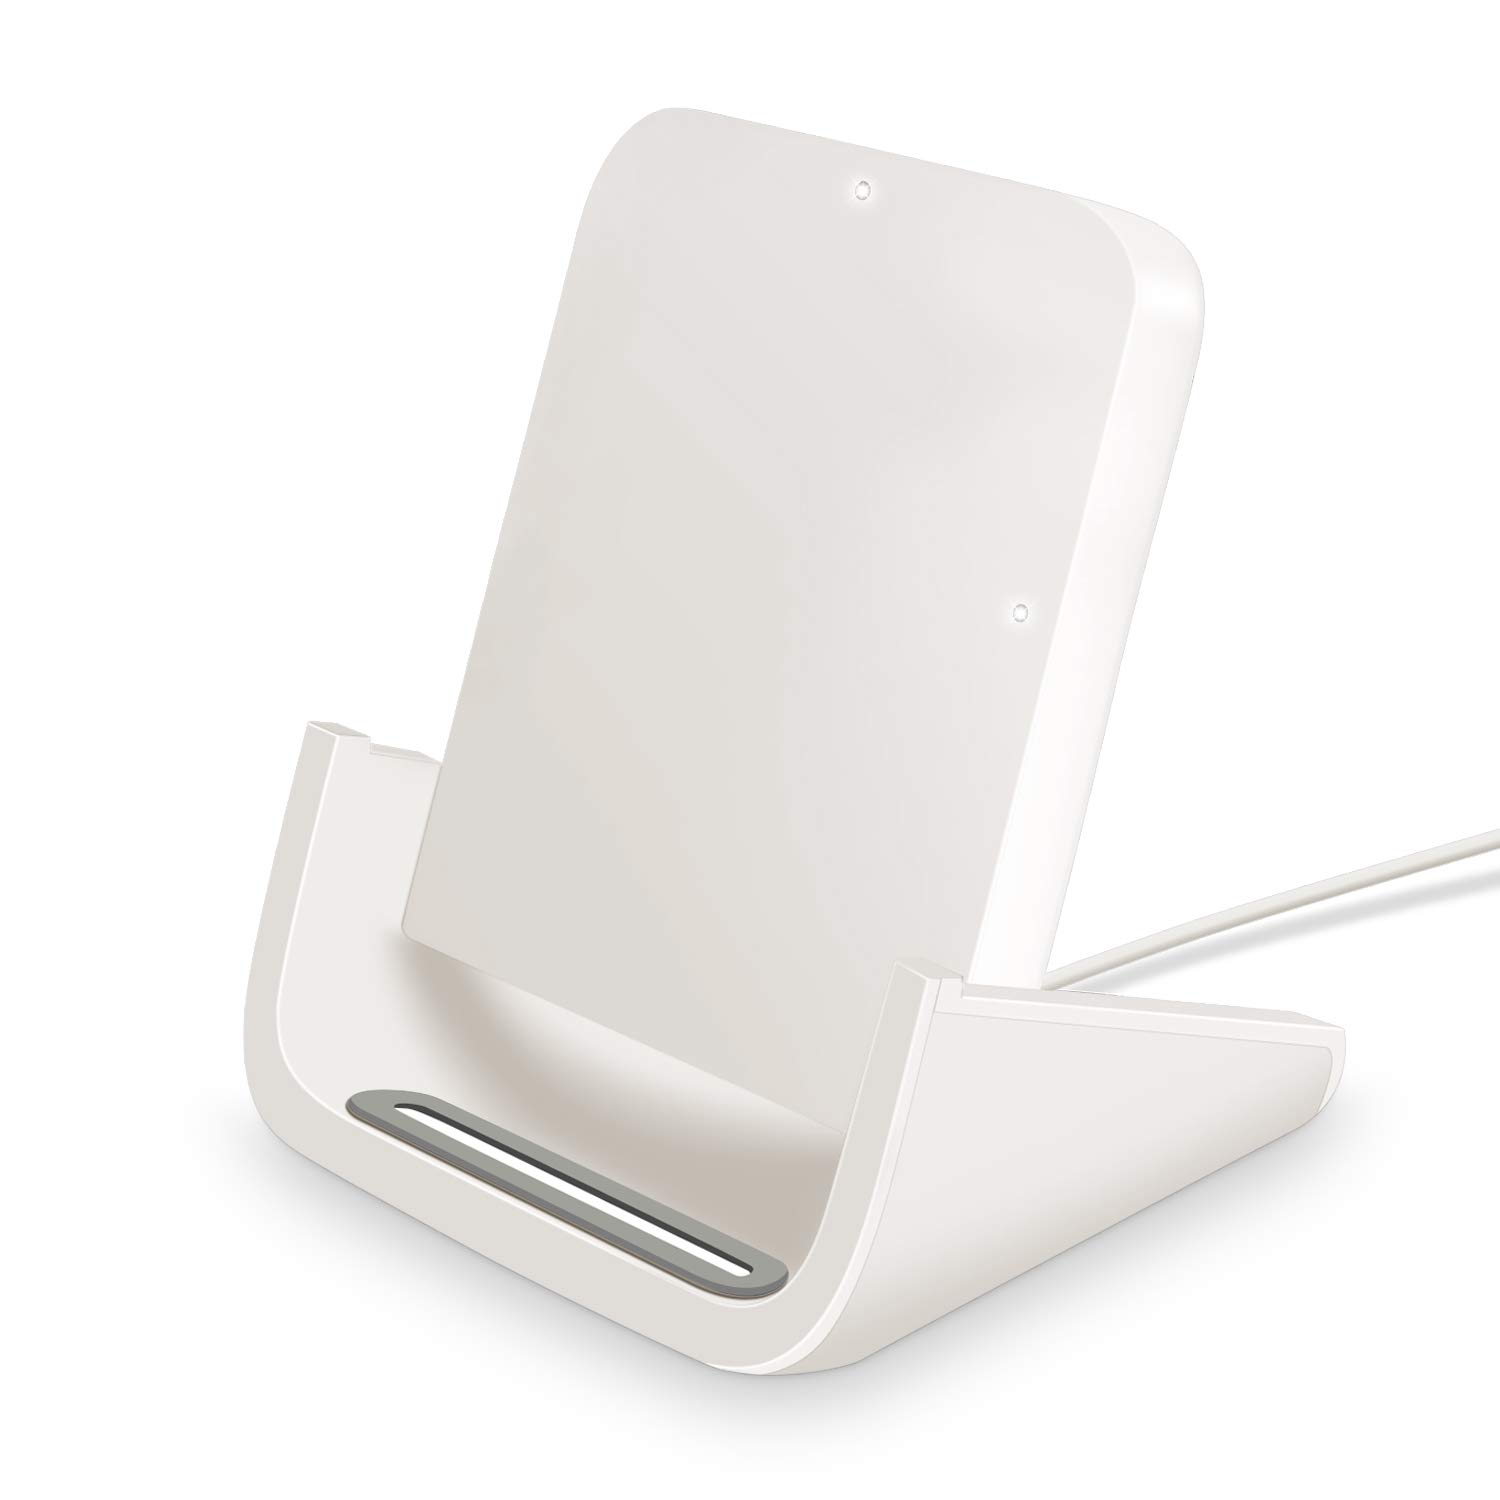 Wireless Charger, Yuwiss 10W Wireless Charging Stand Cordless Chargers Compatible with iPhone XR Max/XS/X/8/8Plus Samsung Galaxy S10/S10 Plus S9/S9 Plus/S10E/S9 Qi-Enabled Devices (White) by YW YUWISS